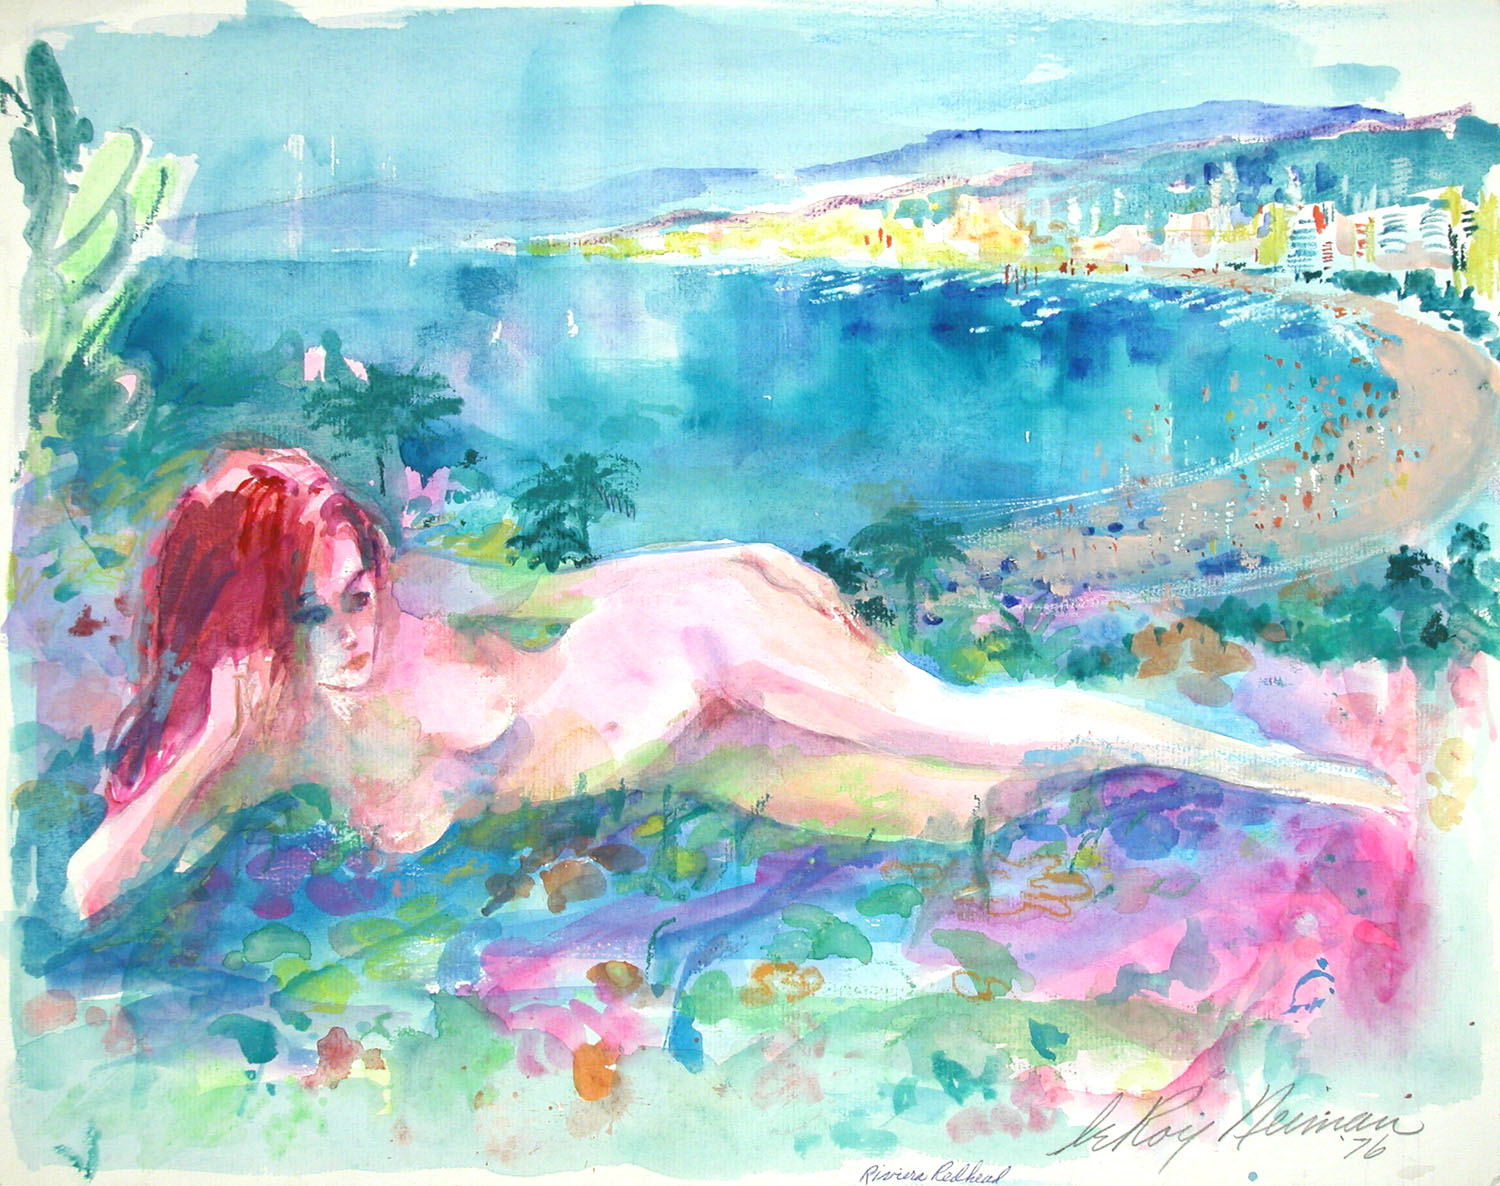 Riviera Redhead, mixed media on paper 15.75 x 20 in., 1976